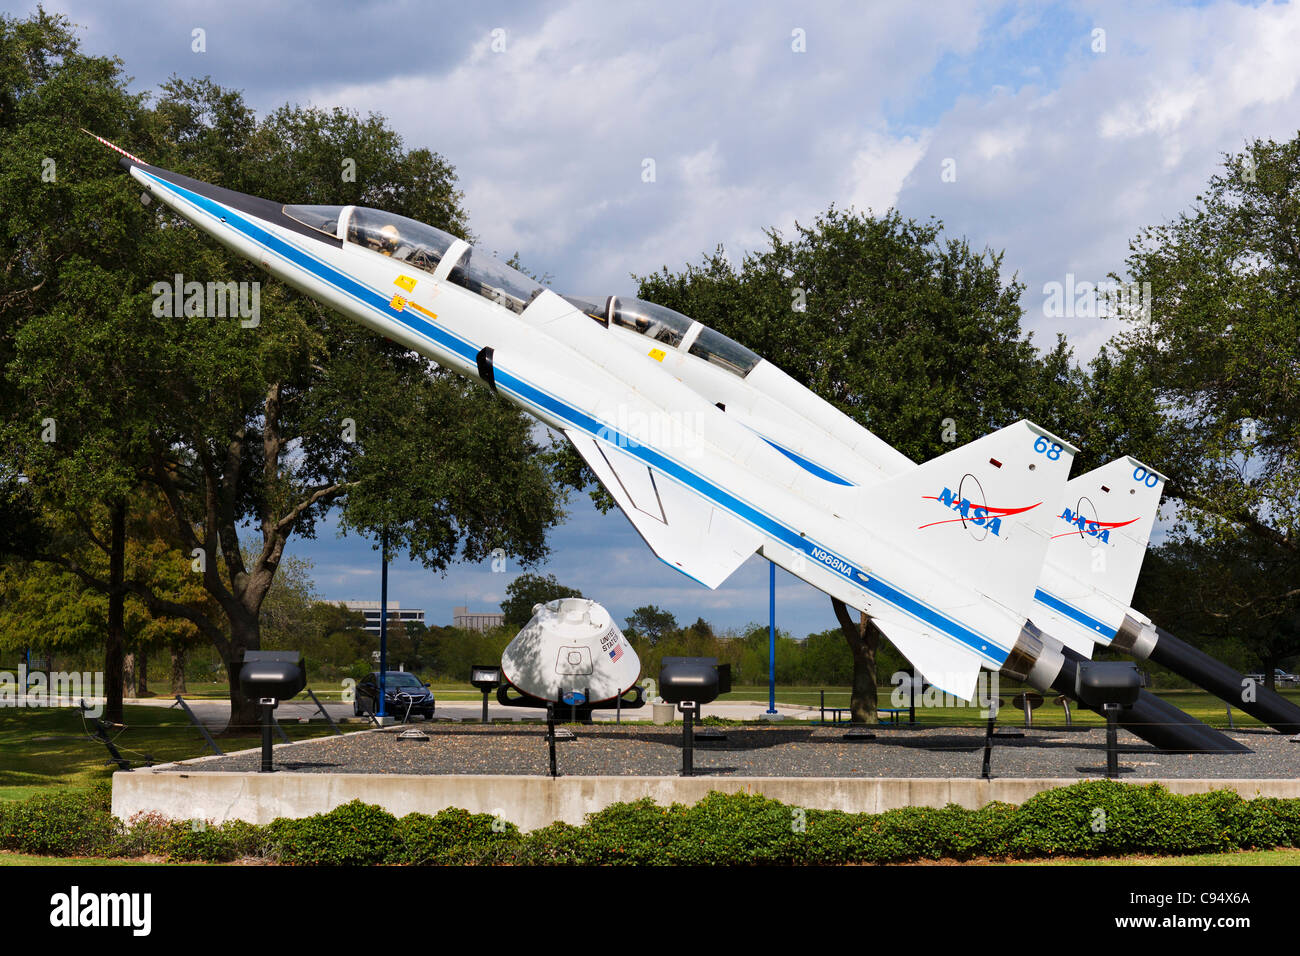 Due Northrop T-38 Taloni jet formatori all'ingresso della Houston Space Center Houston, Texas, Stati Uniti d'America Immagini Stock